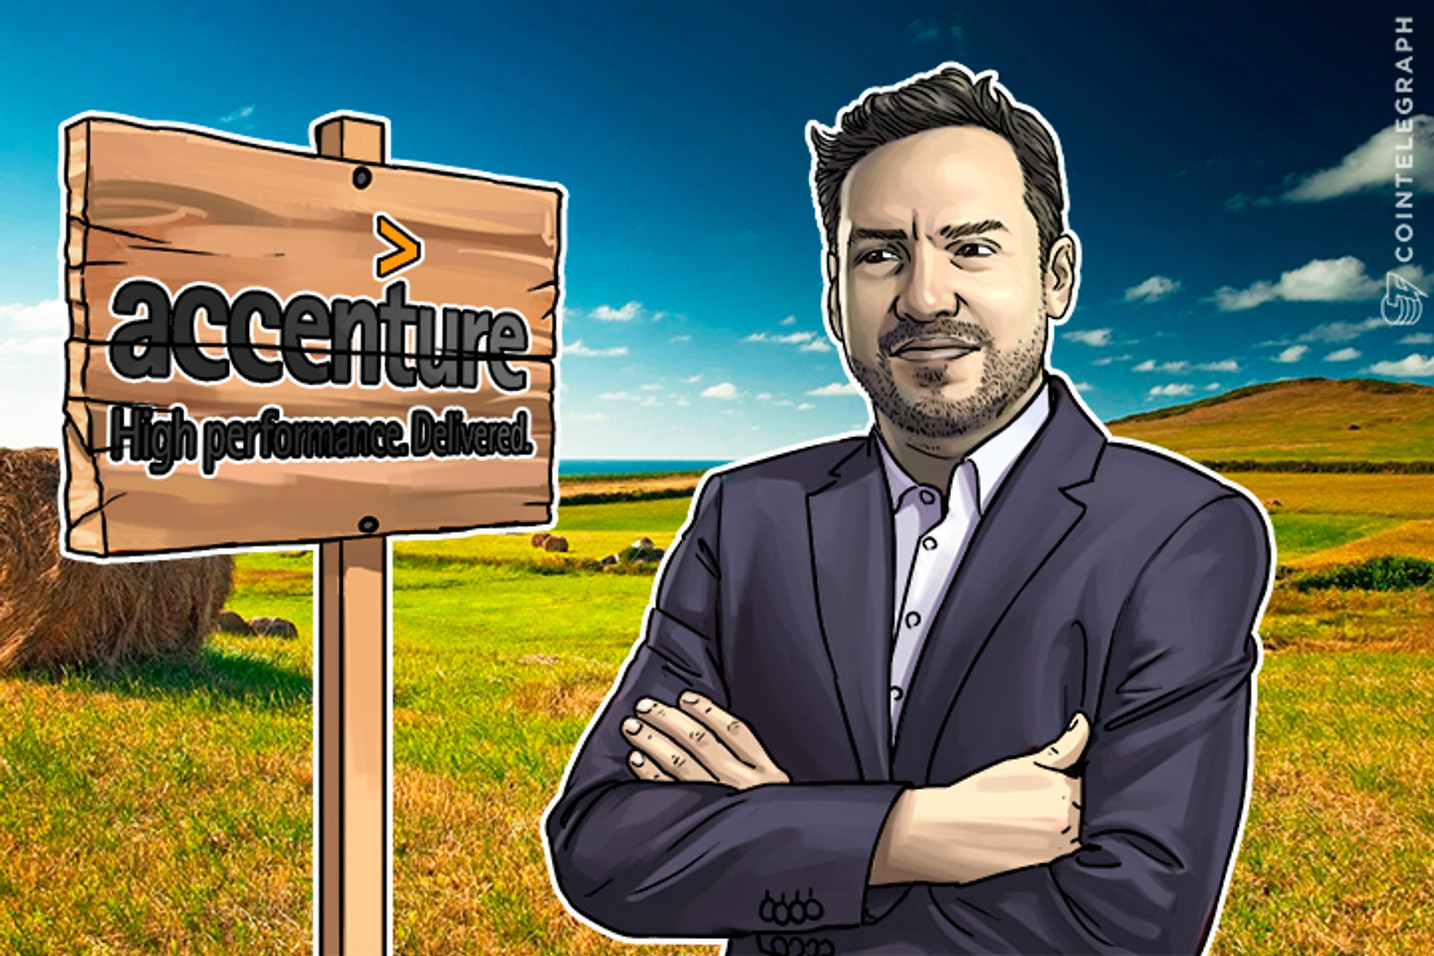 Coinkite CEO Heavily Criticizes Editable Blockchain by Accenture